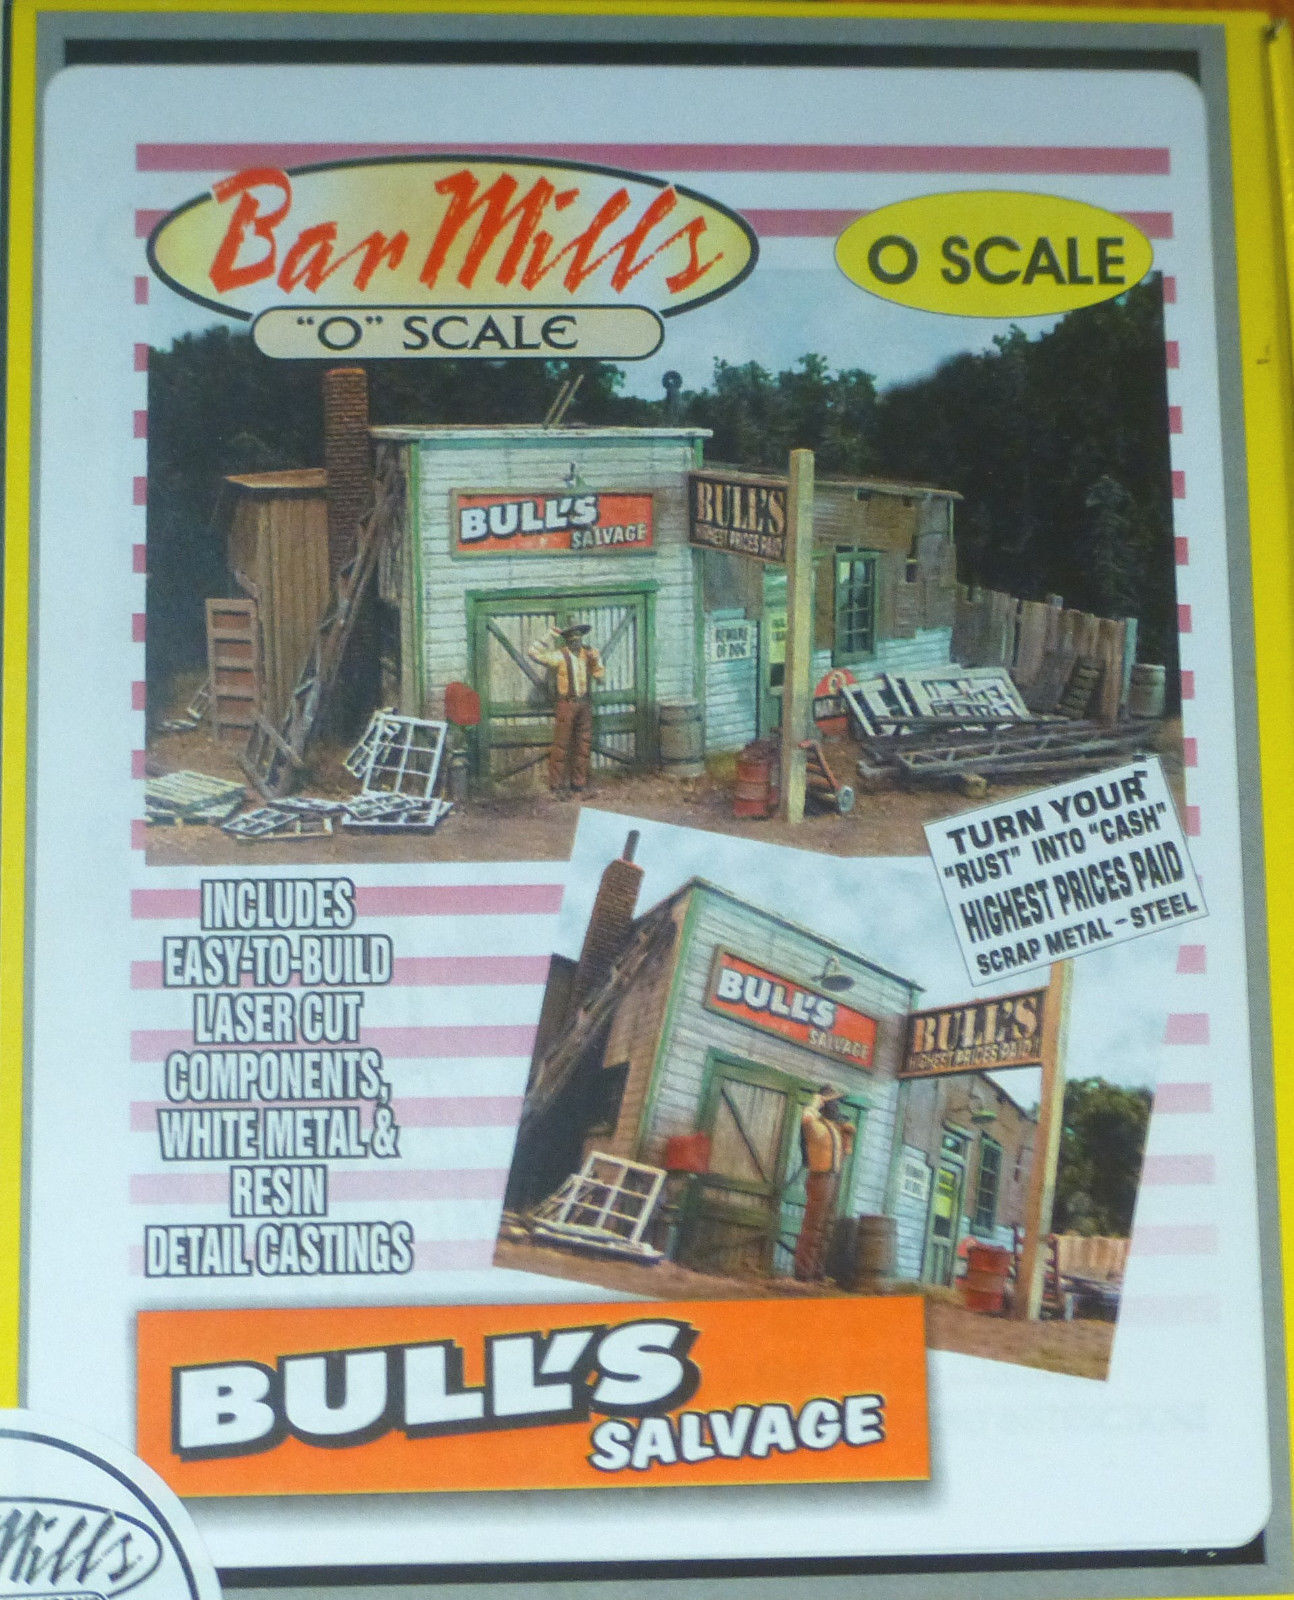 BAR Mills  454 o scale BULL'S Salvage KIT con i segni LaserCut